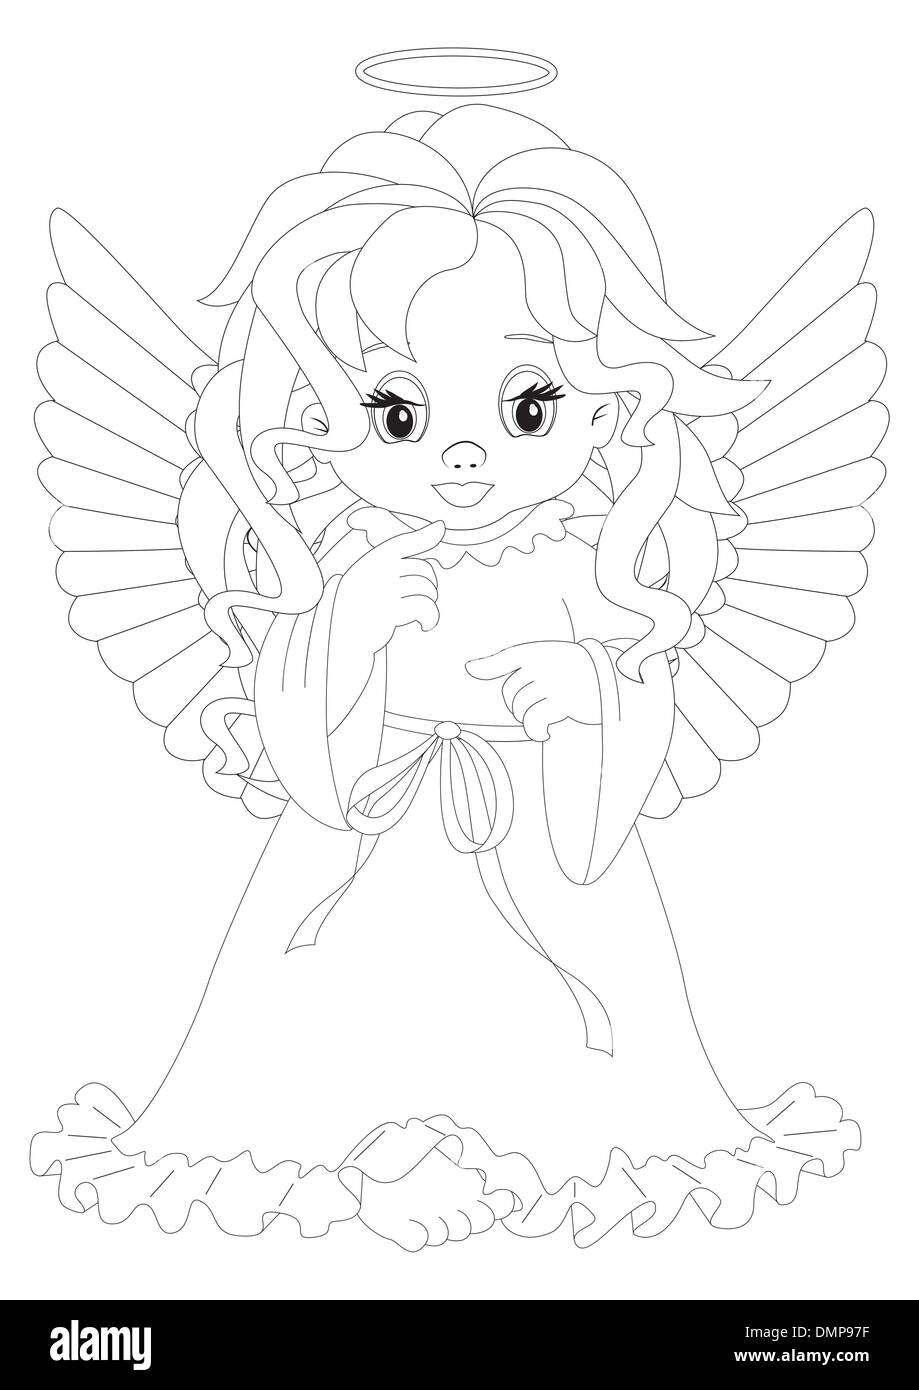 little angel coloring page stock vector art u0026 illustration vector